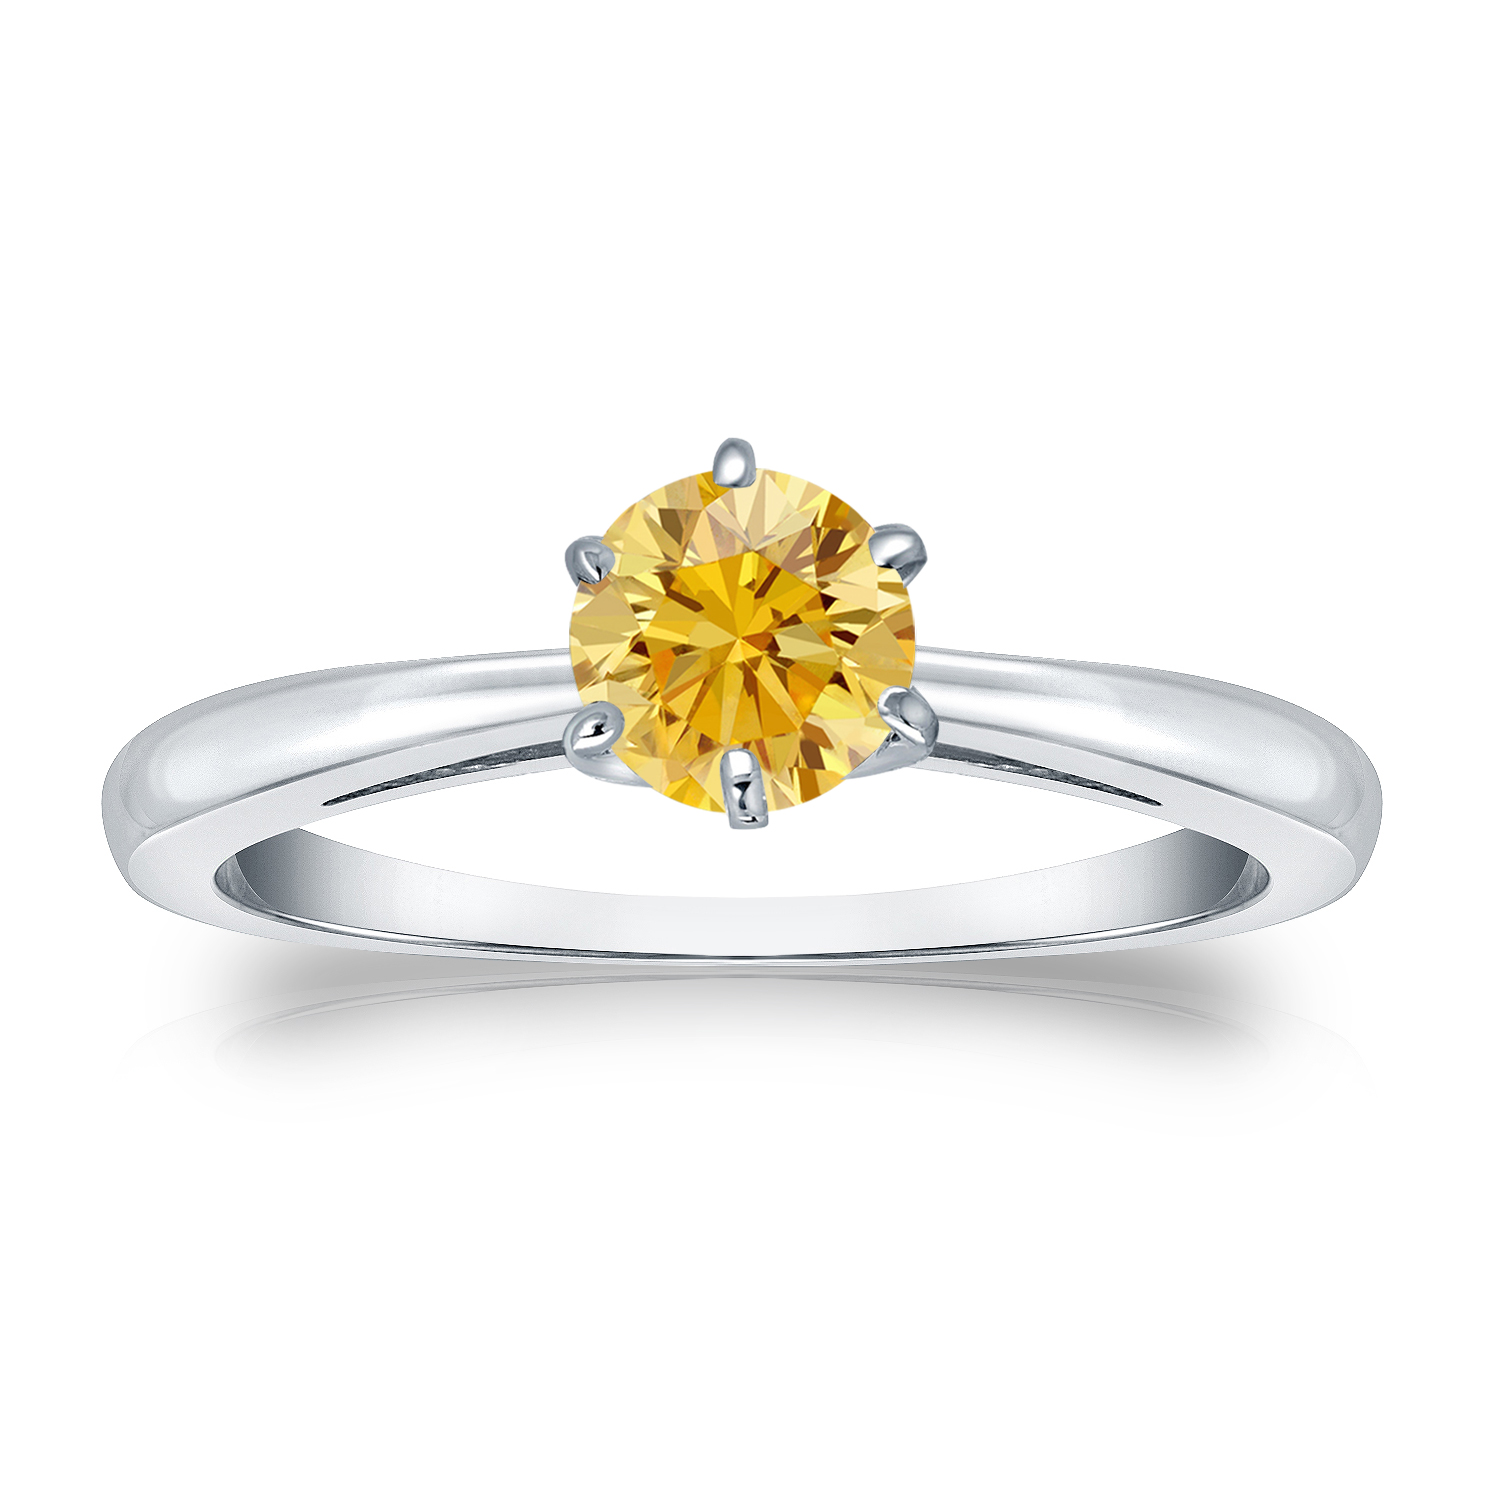 1/2 CT YELLOW DIAMOND ENGAGEMENT RING 14K WHITE GOLD